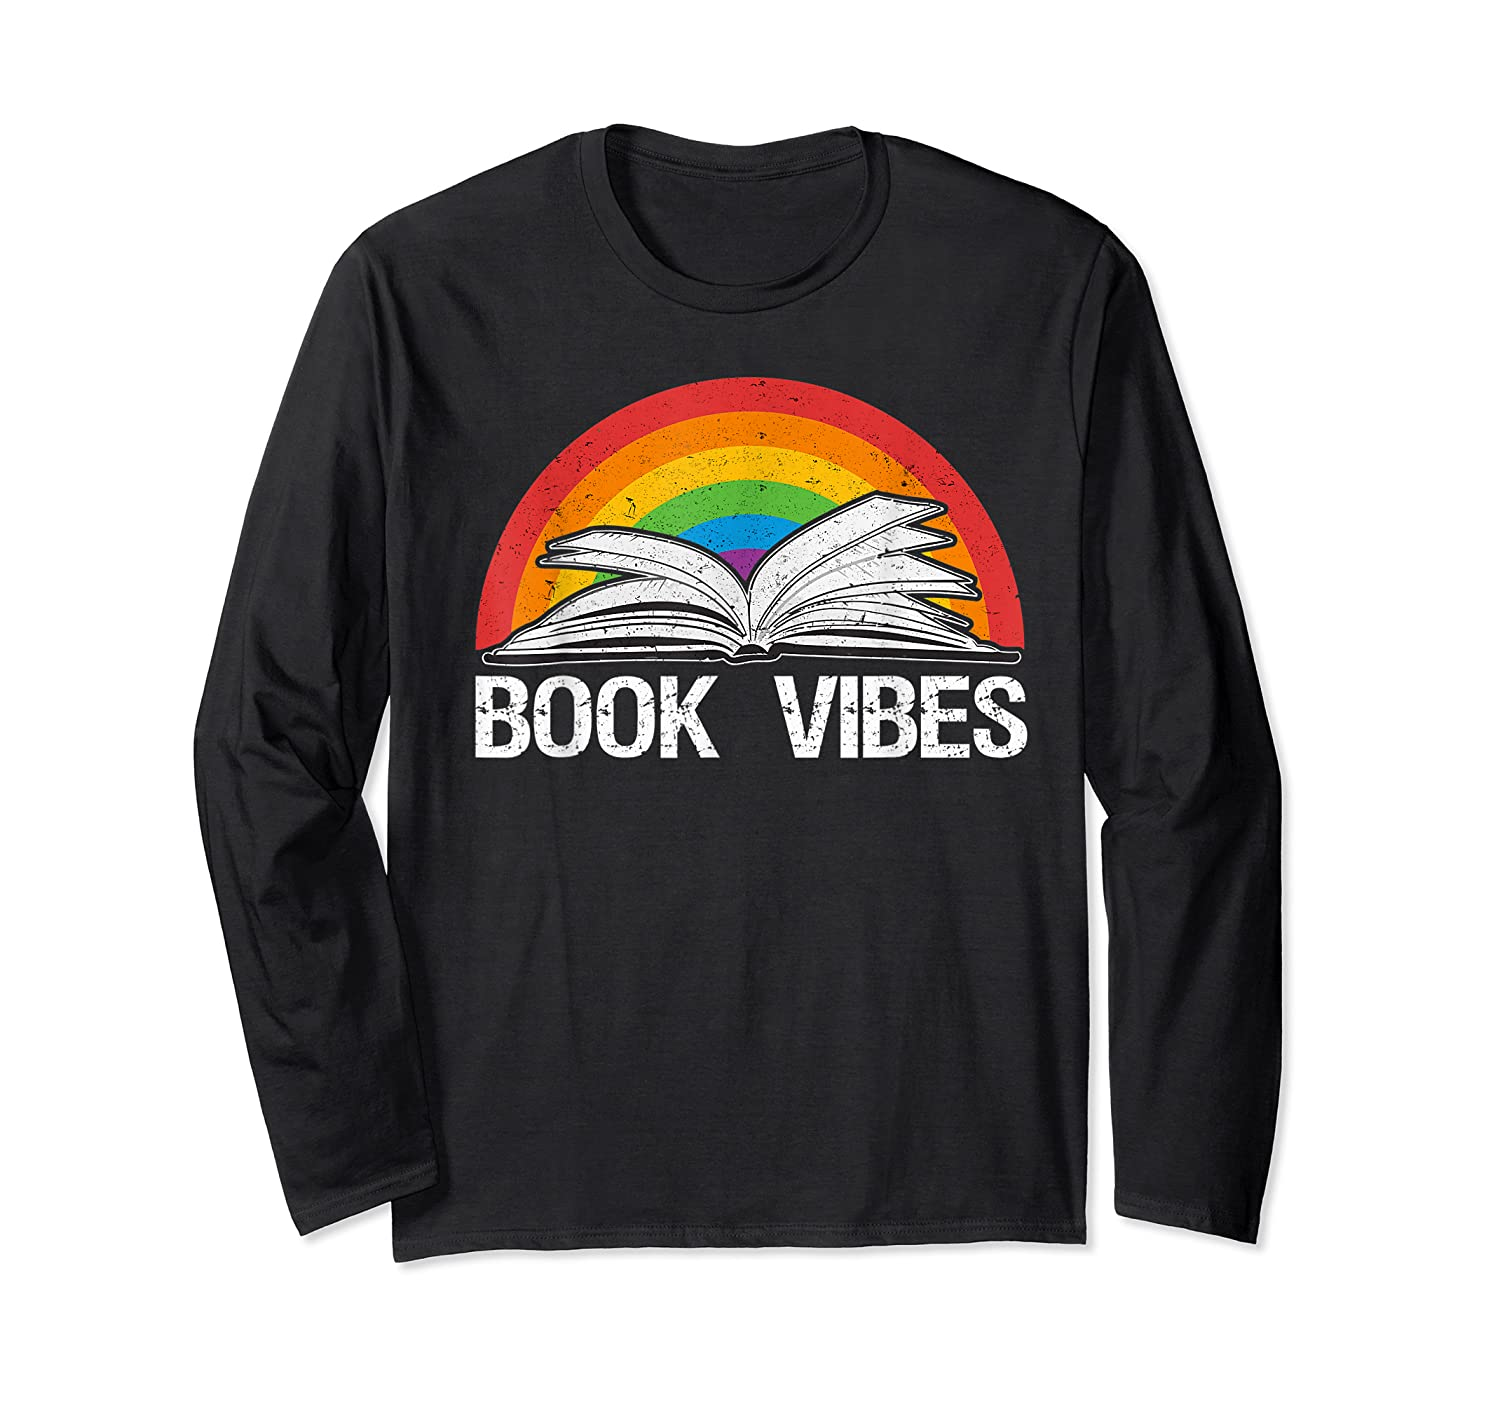 Vintage Retro Book Vibes Rainbow Gift For Reading Lovers T Shirt Long Sleeve T-shirt